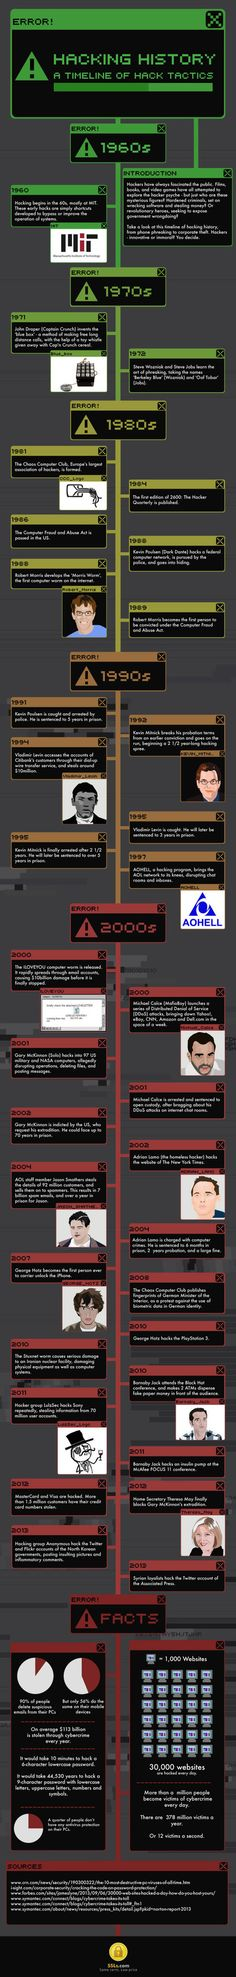 PC history #infografia #infographic. This would make a great quick ...